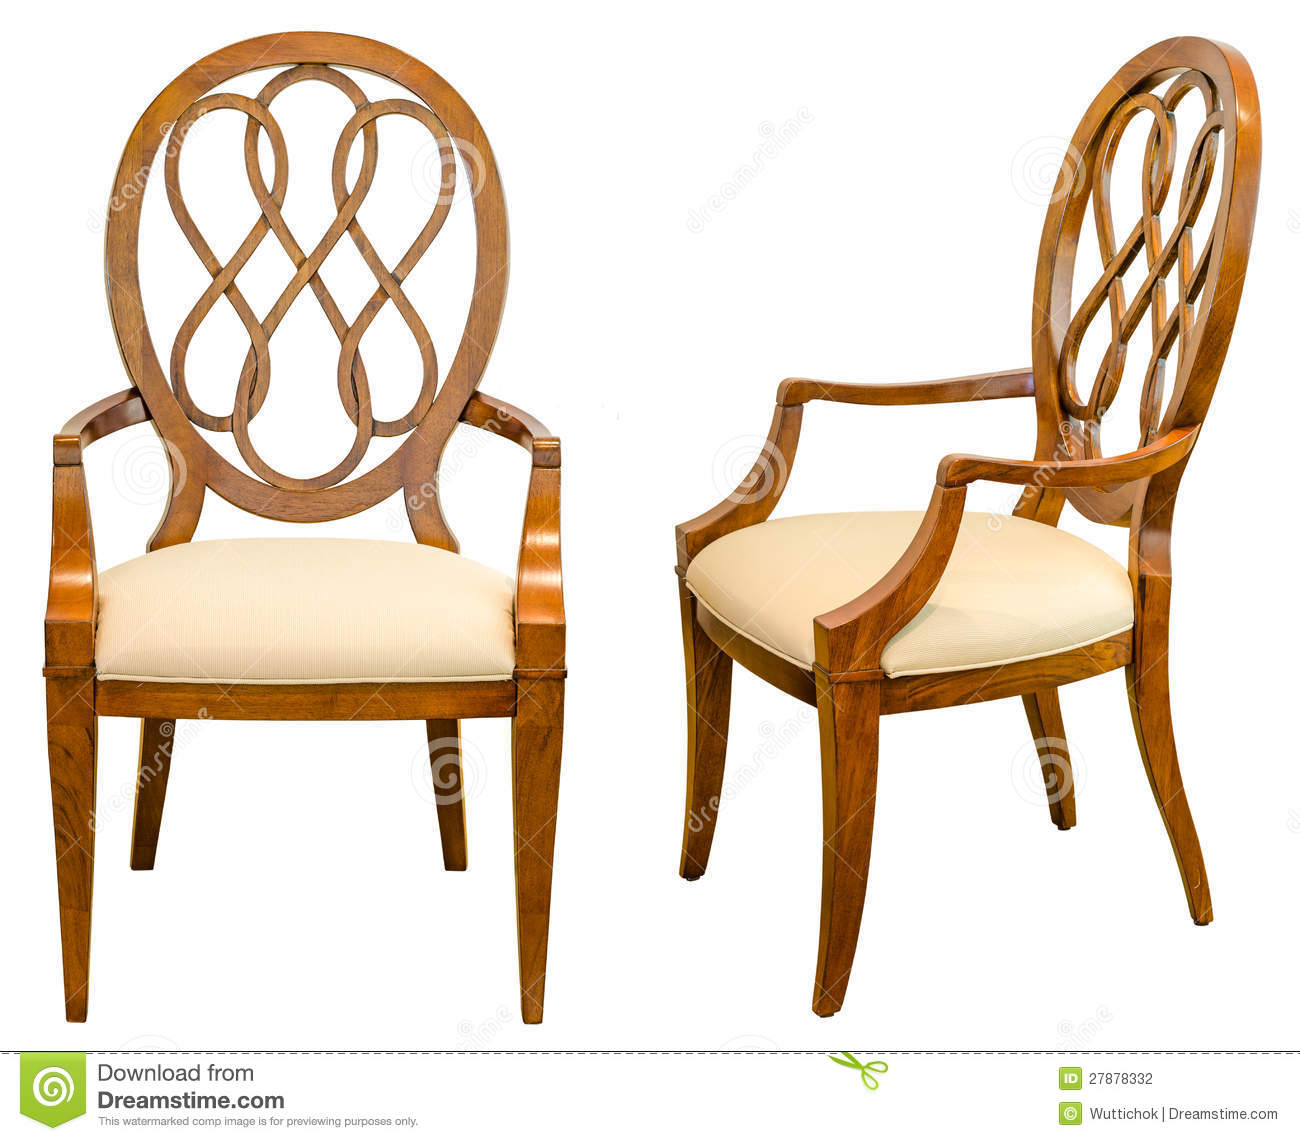 Wooden chairs design classics - Modern Style Wooden Chair Stock Photography Image 27878332